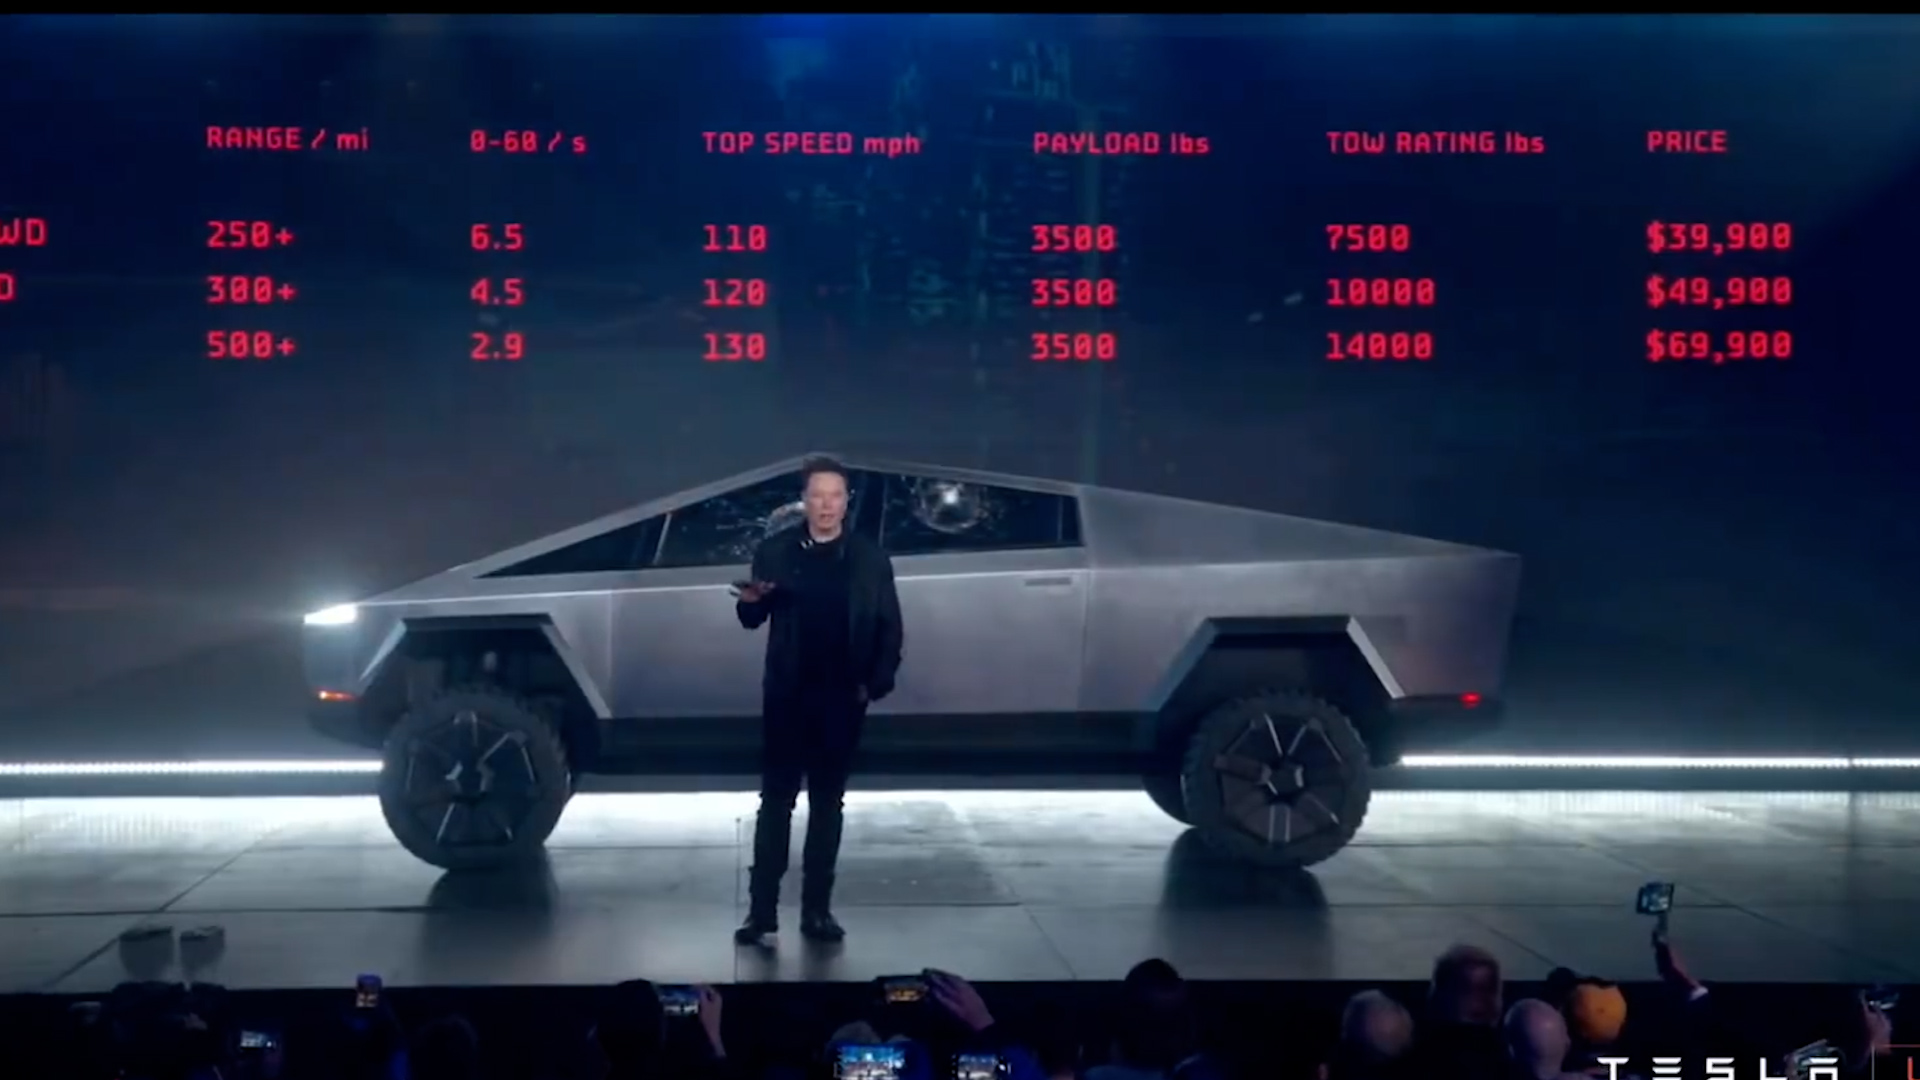 Video: Tesla's Cybertruck is further delayed, ABBA releases new music and virtual concert plans